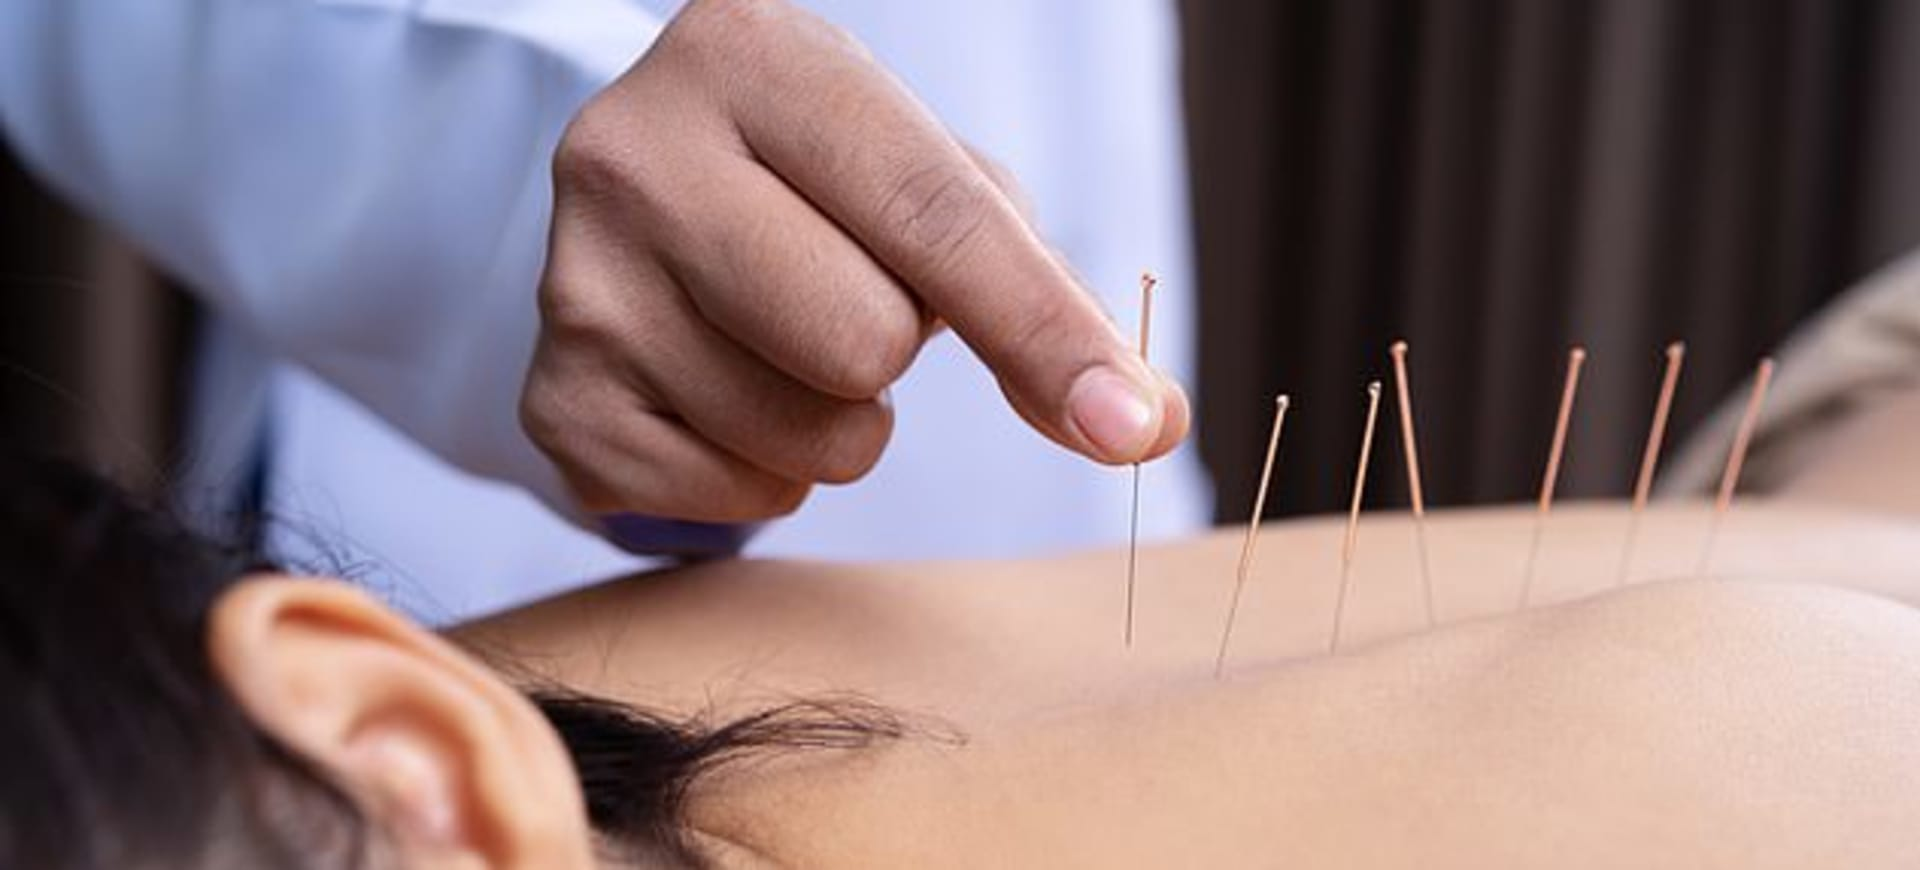 Acupuncture could be used to treat alcohol dependency by activating brain pathways that are reduced in alcoholics, scientists claim